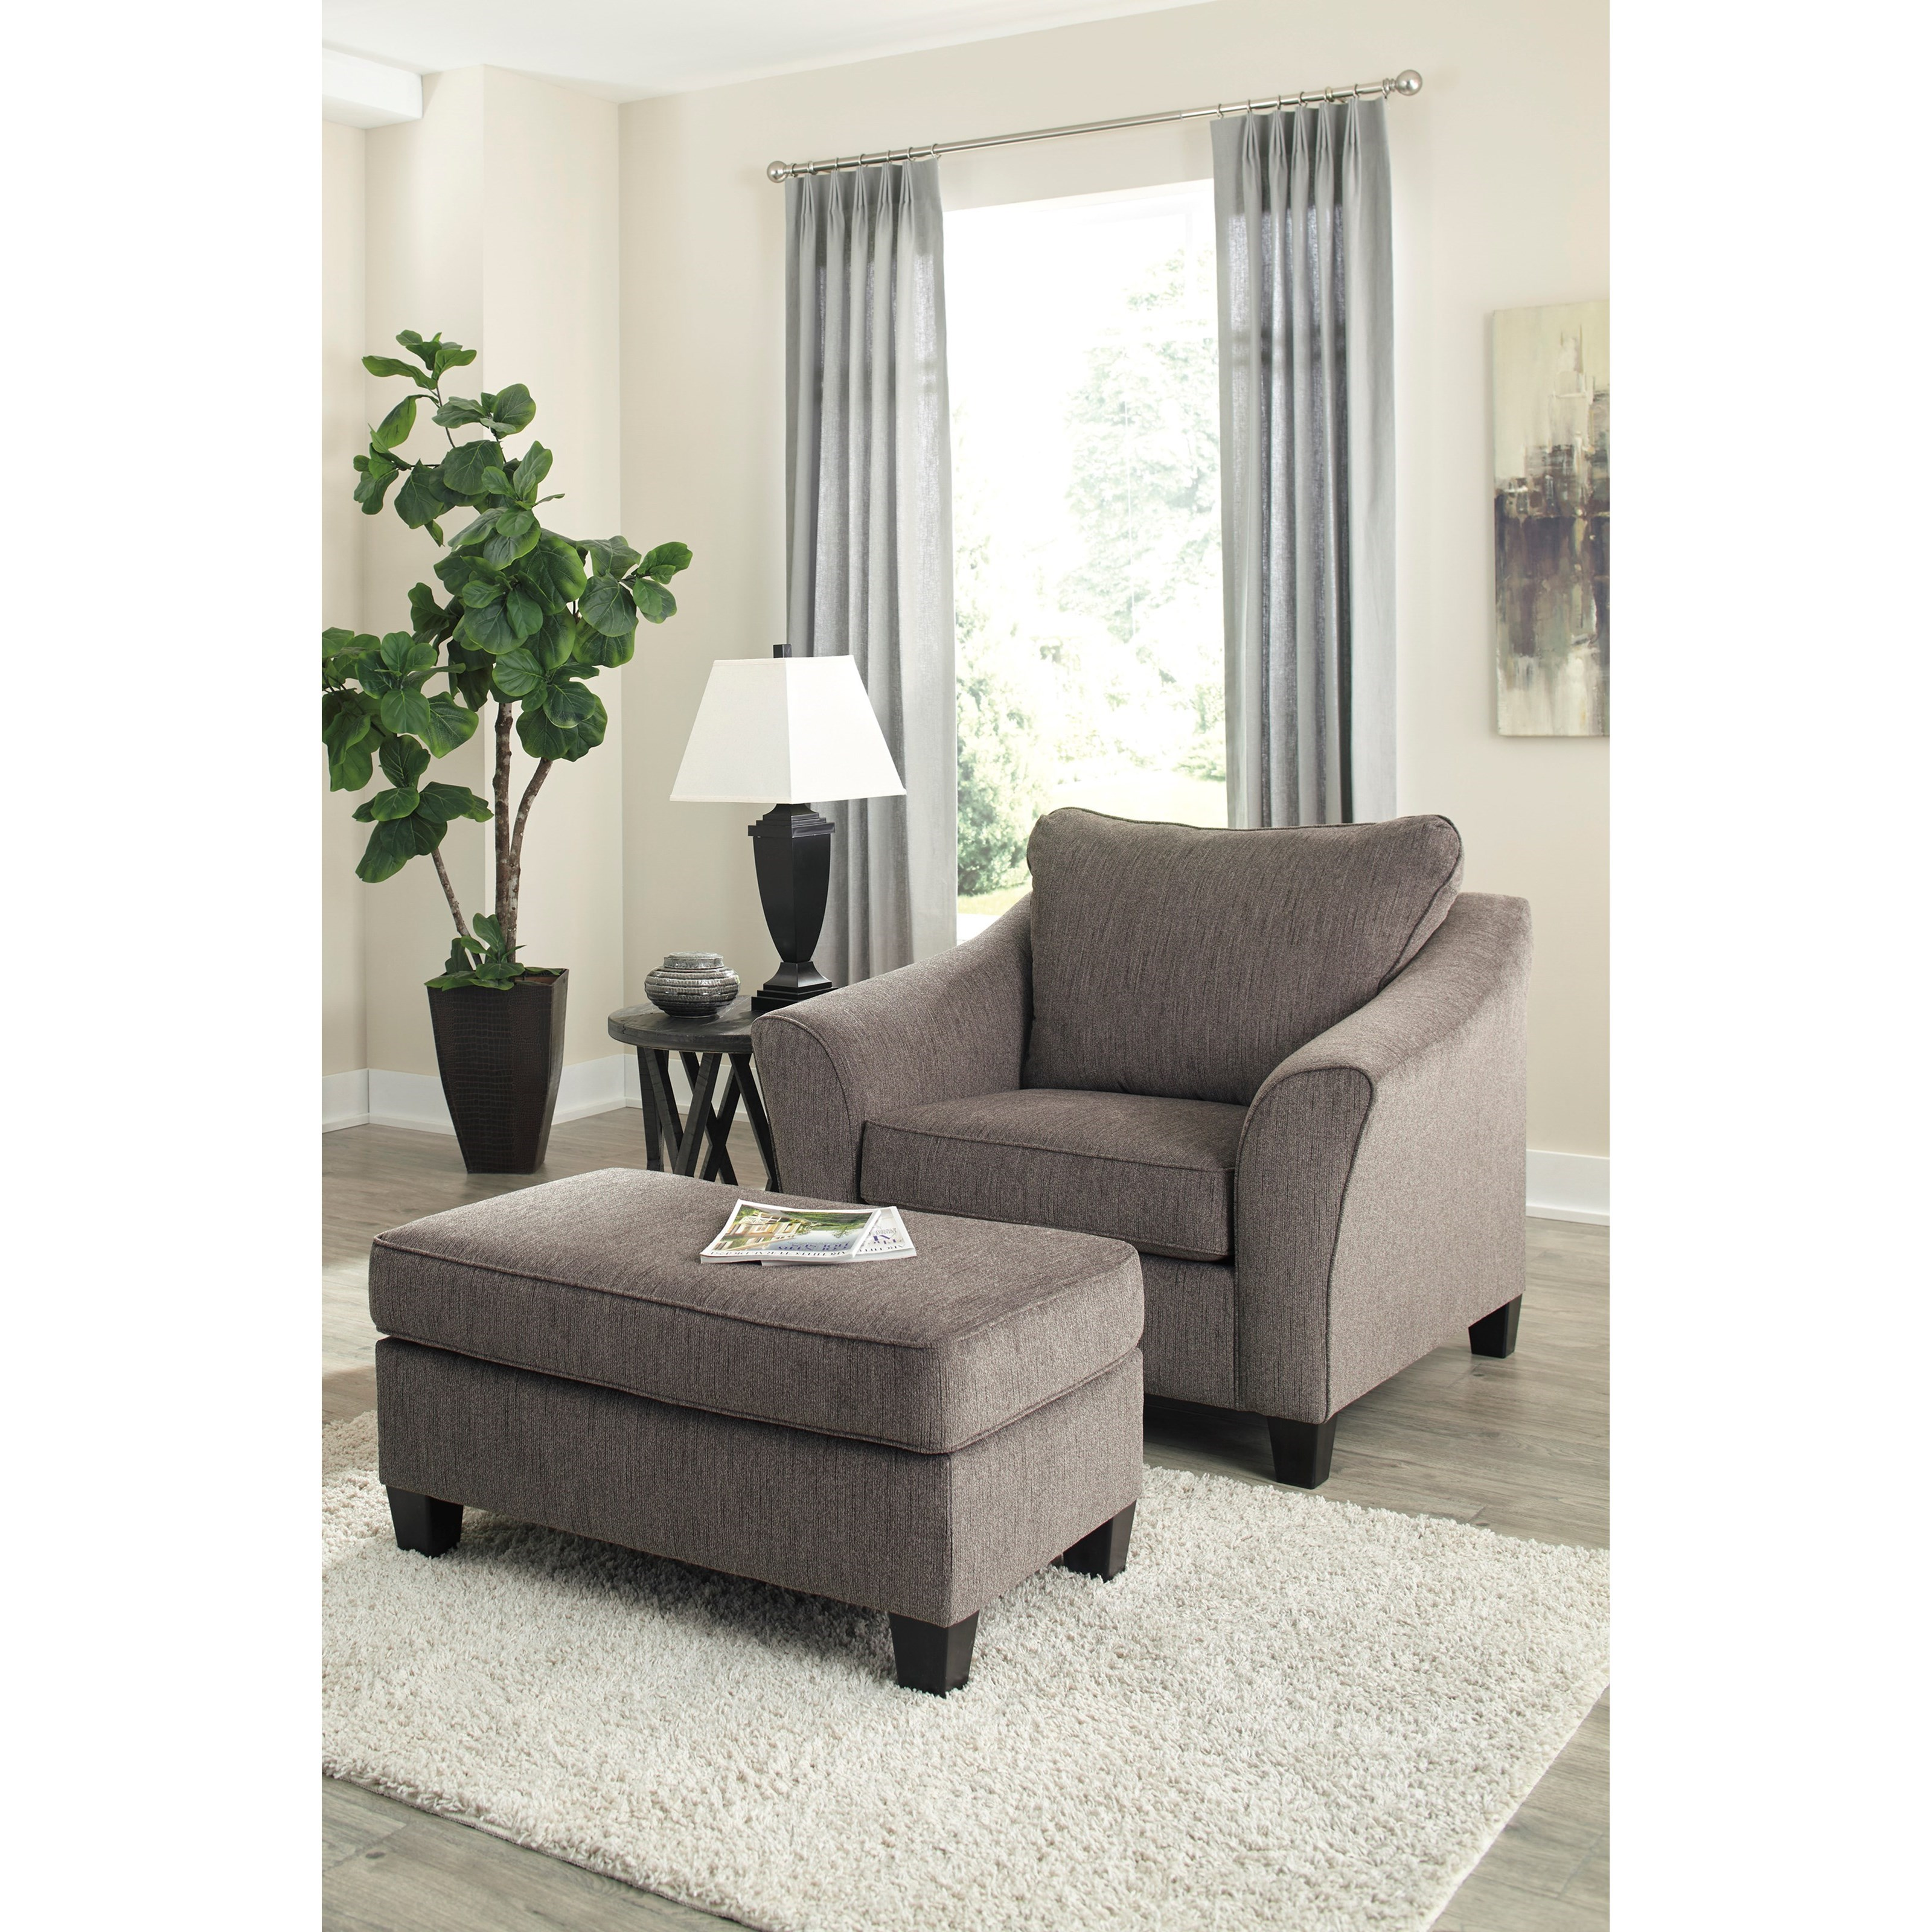 Niya Chair and a Half & Ottoman by Signature at Walker's Furniture